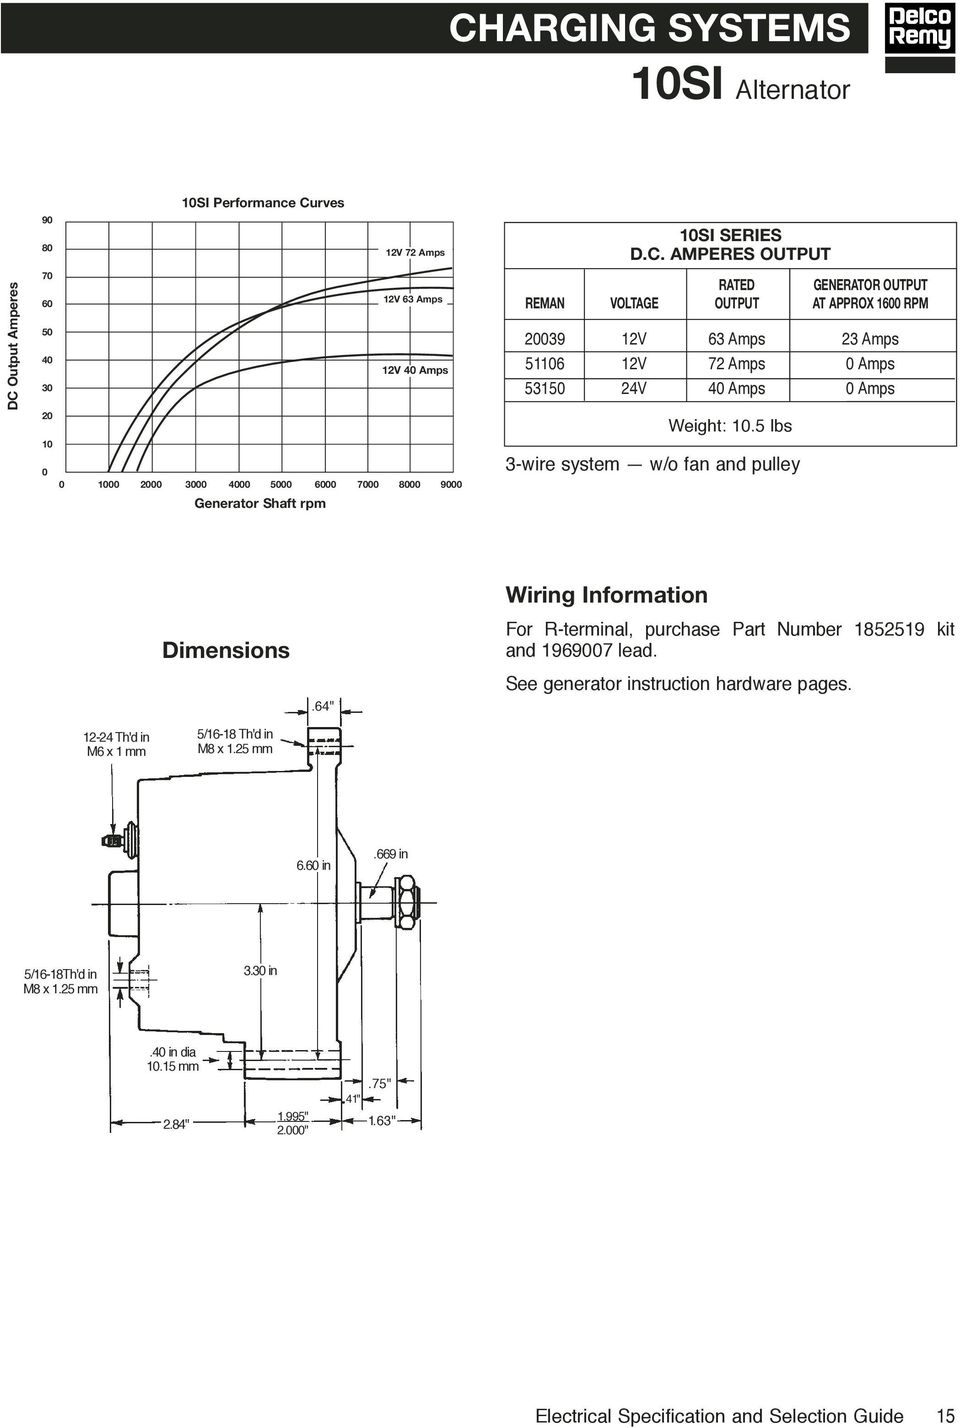 cs130 alternator wiring diagram kawasaki mule 3010 parts electrical specifications & selection guide - pdf